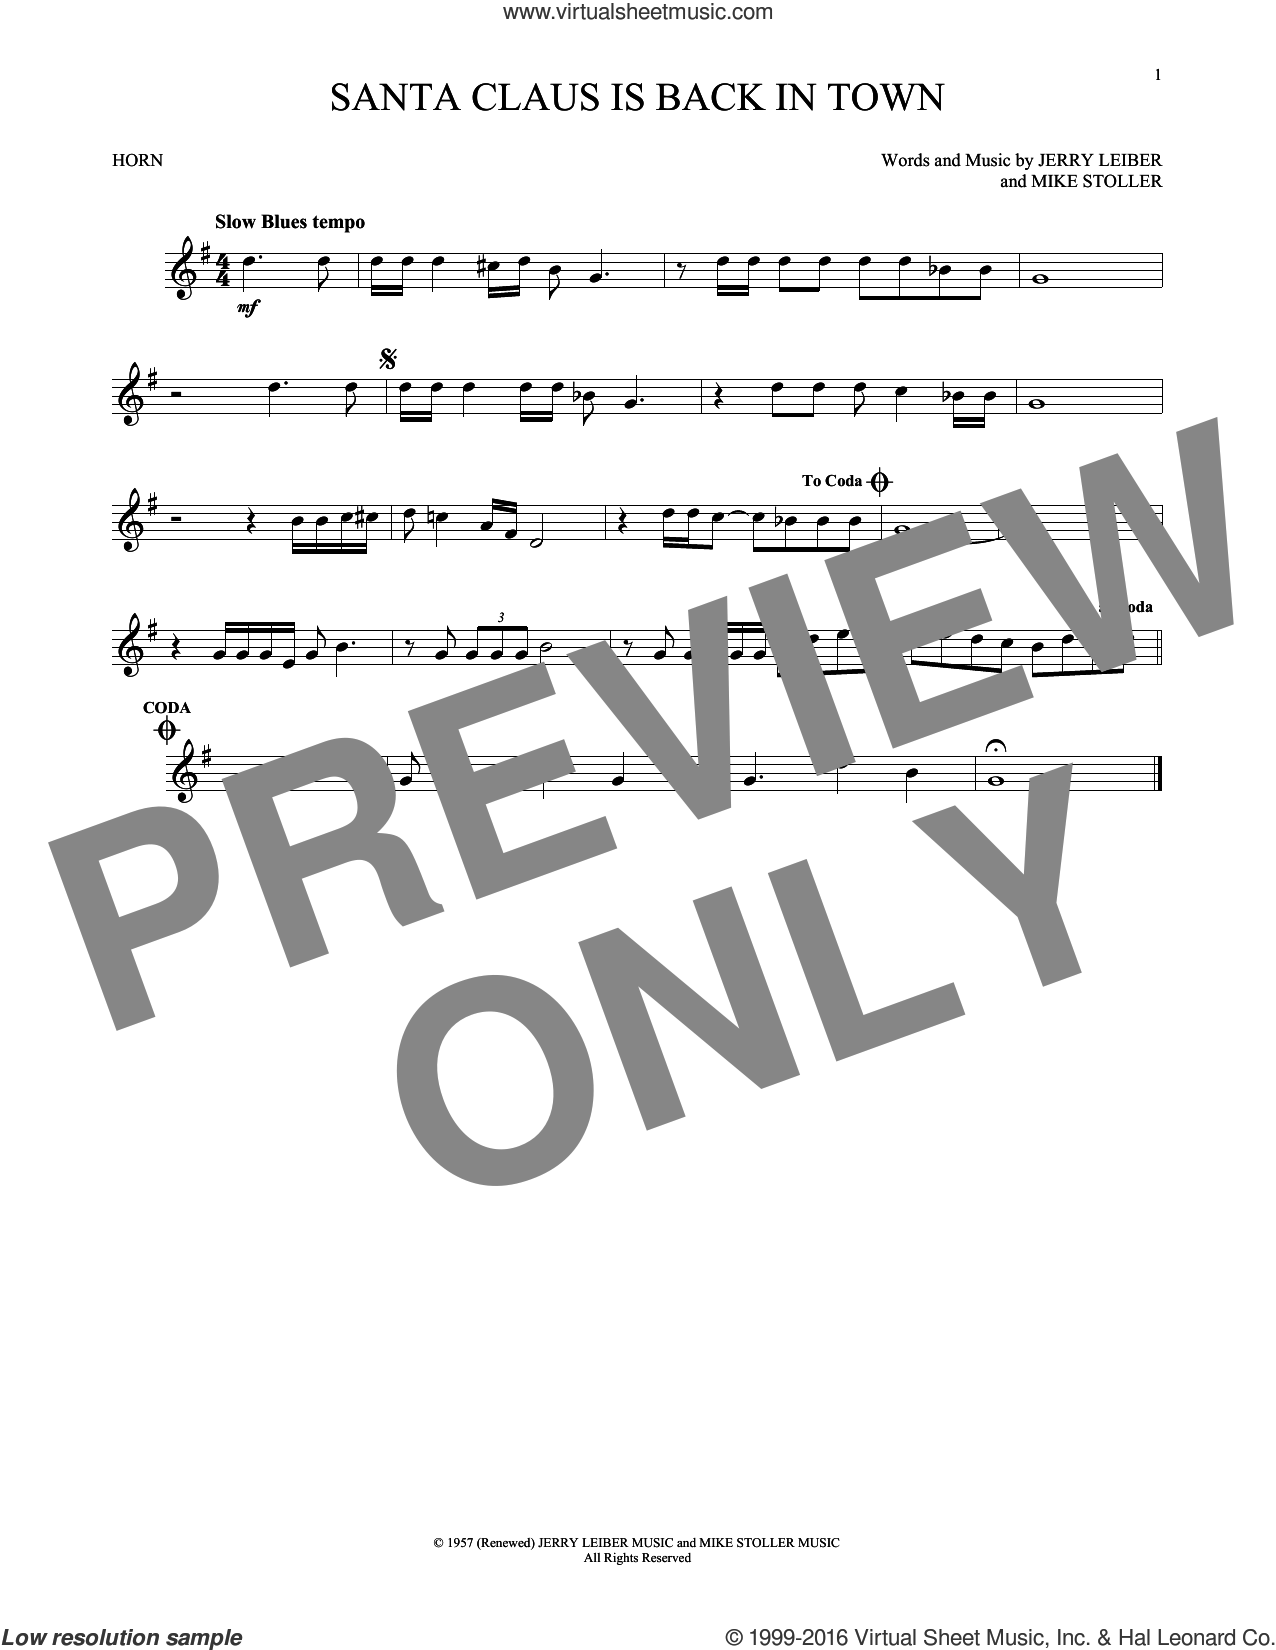 Santa Claus Is Back In Town sheet music for horn solo by Elvis Presley, Jerry Leiber and Mike Stoller, intermediate skill level